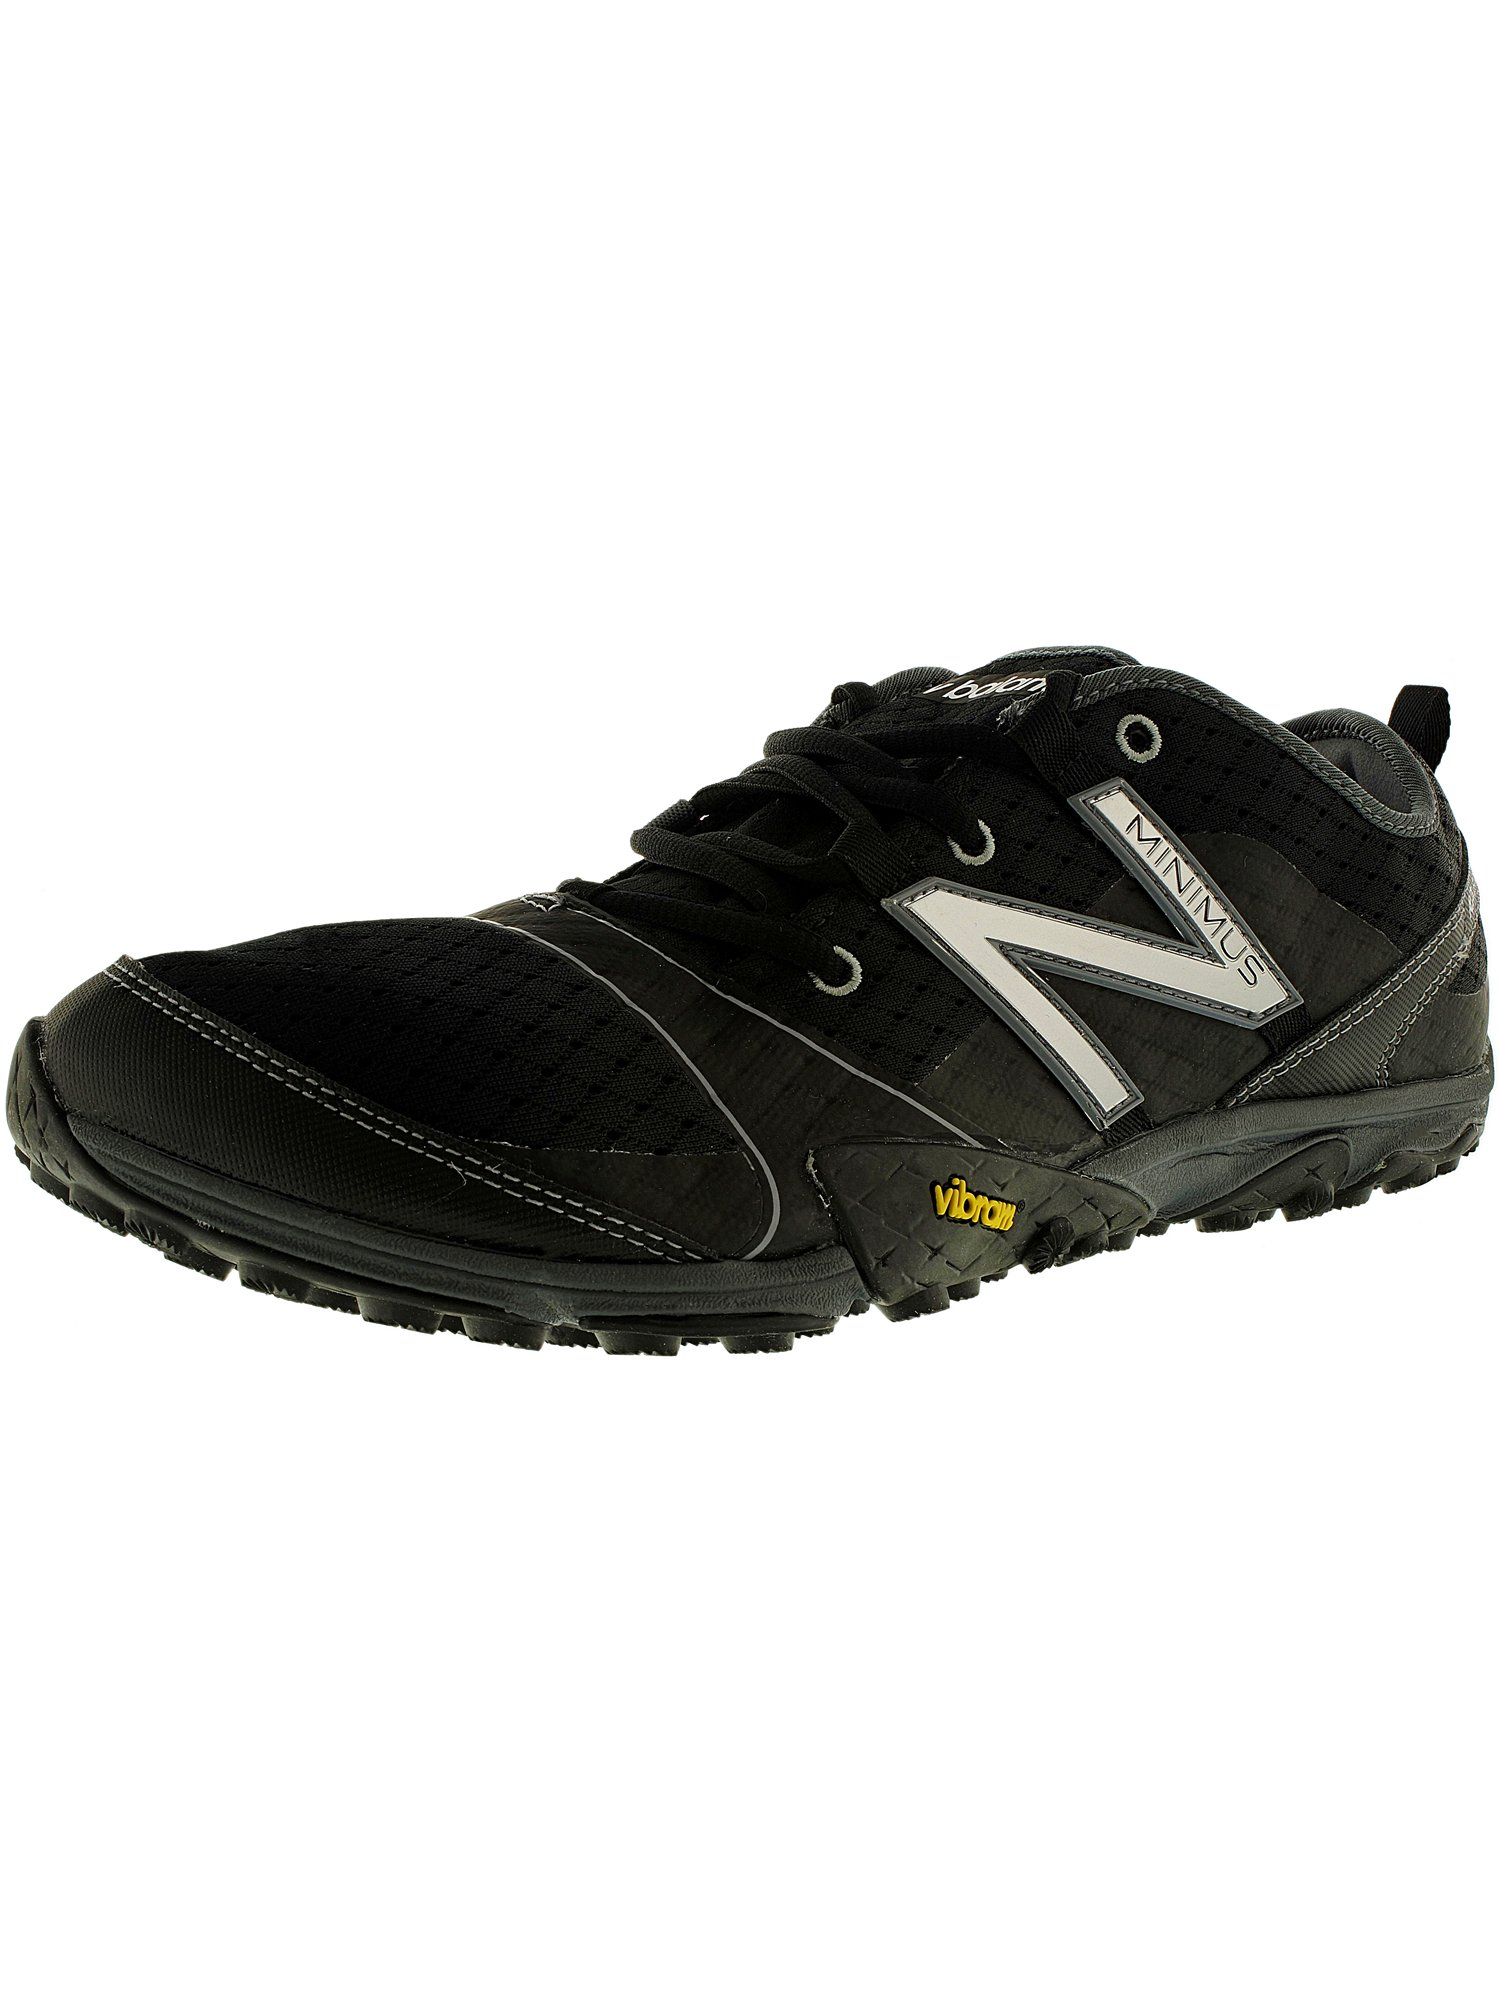 New Balance Men's Mt10 Br4 Ankle-High Running Shoe 9.5M by New Balance